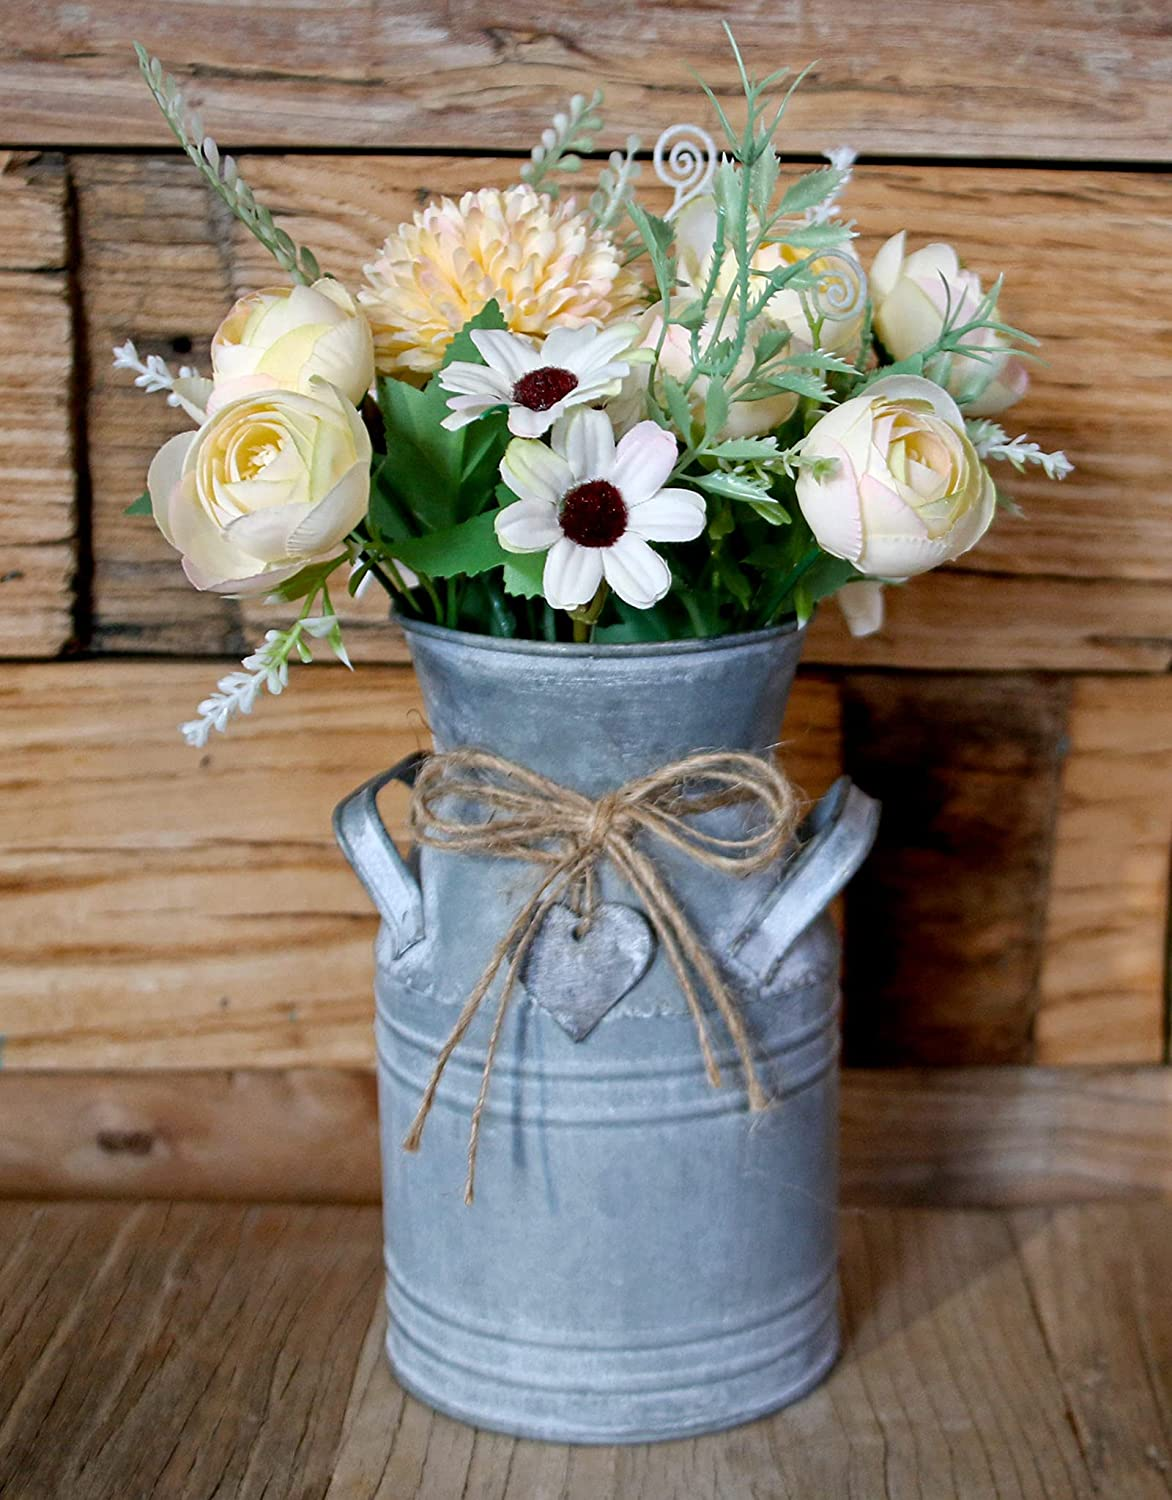 Vintage Galvanized Milk Can, Farmhouse Decorative Flower Vase, Rustic French Country Metal Jug for Home Decor,7.2'' H